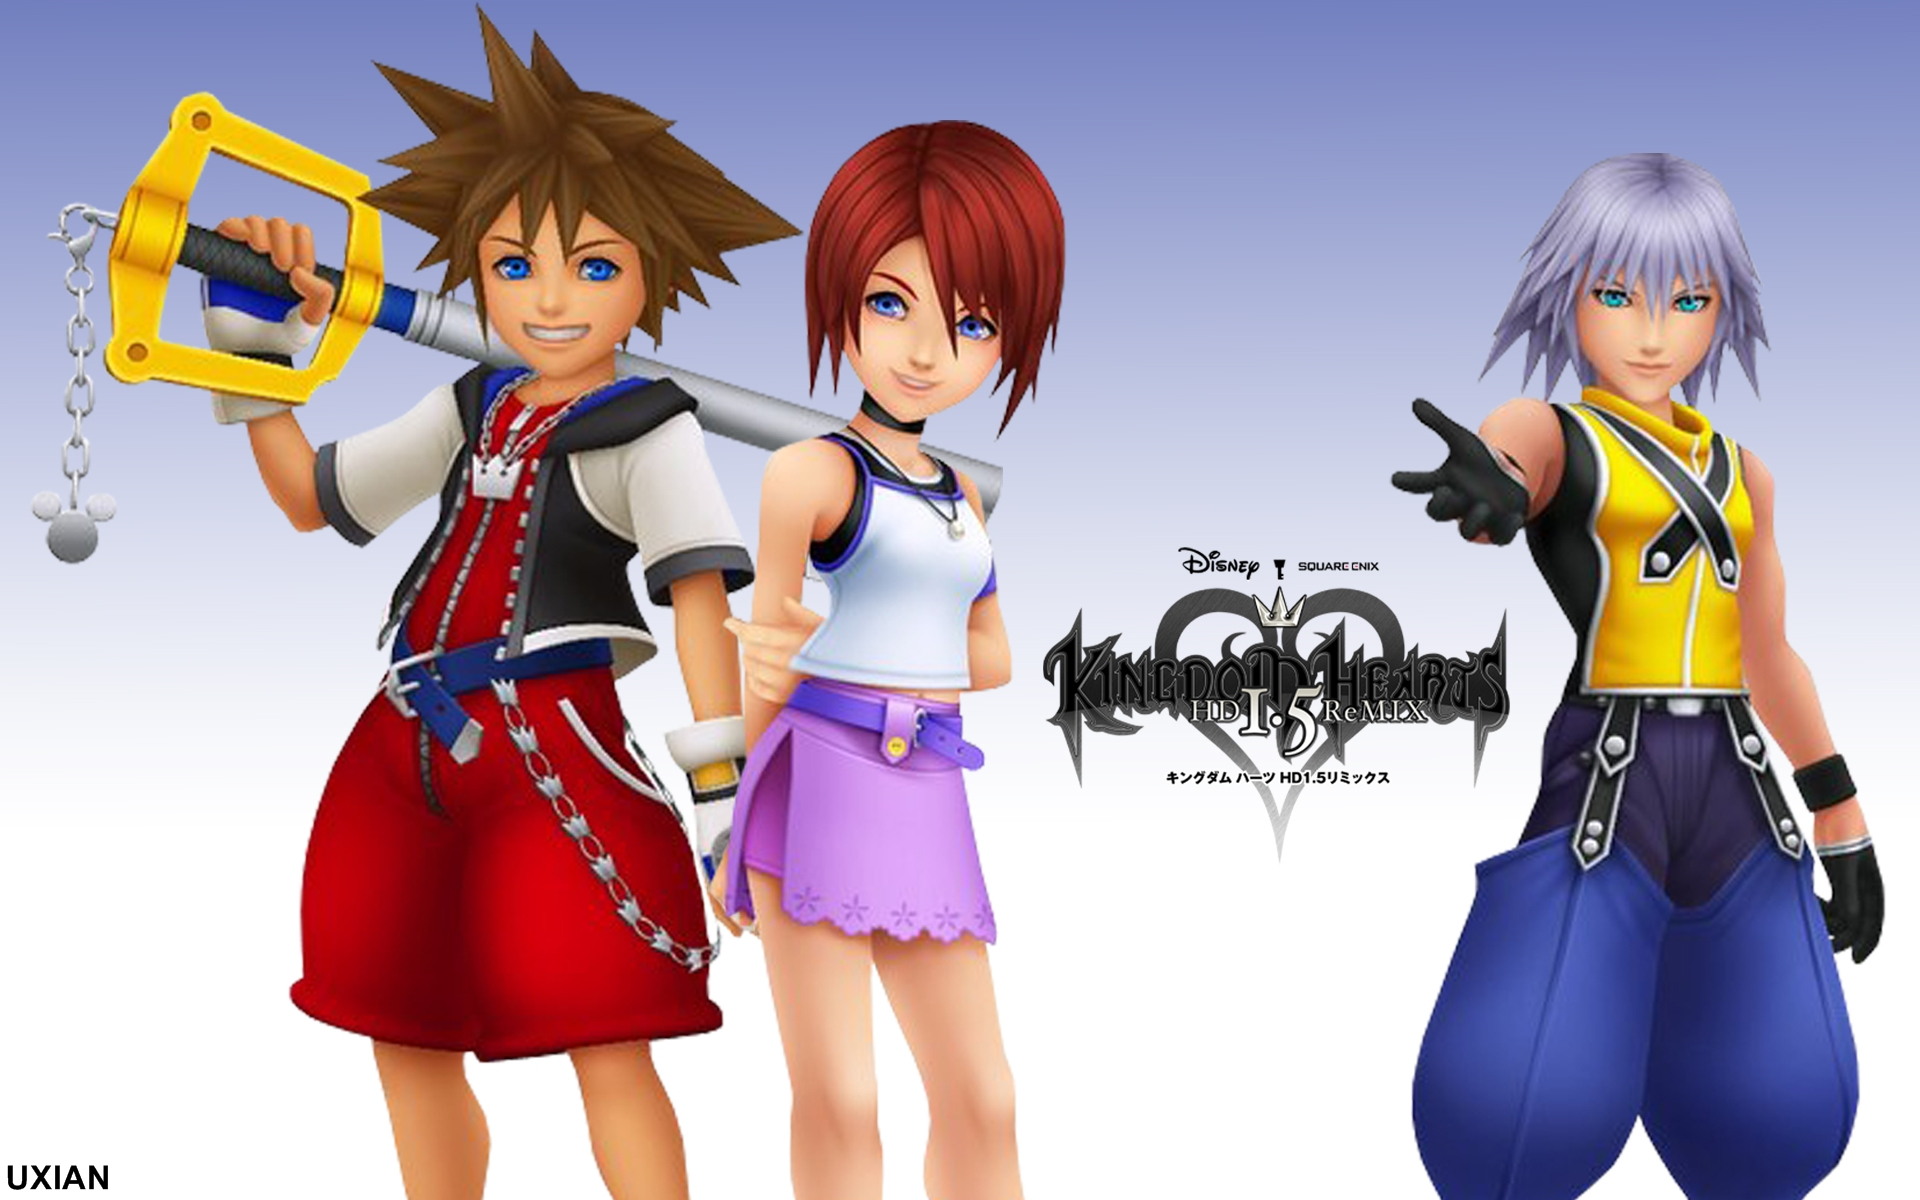 Kingdom Hearts 15 Hd Remix By Uxianxiii On Deviantart